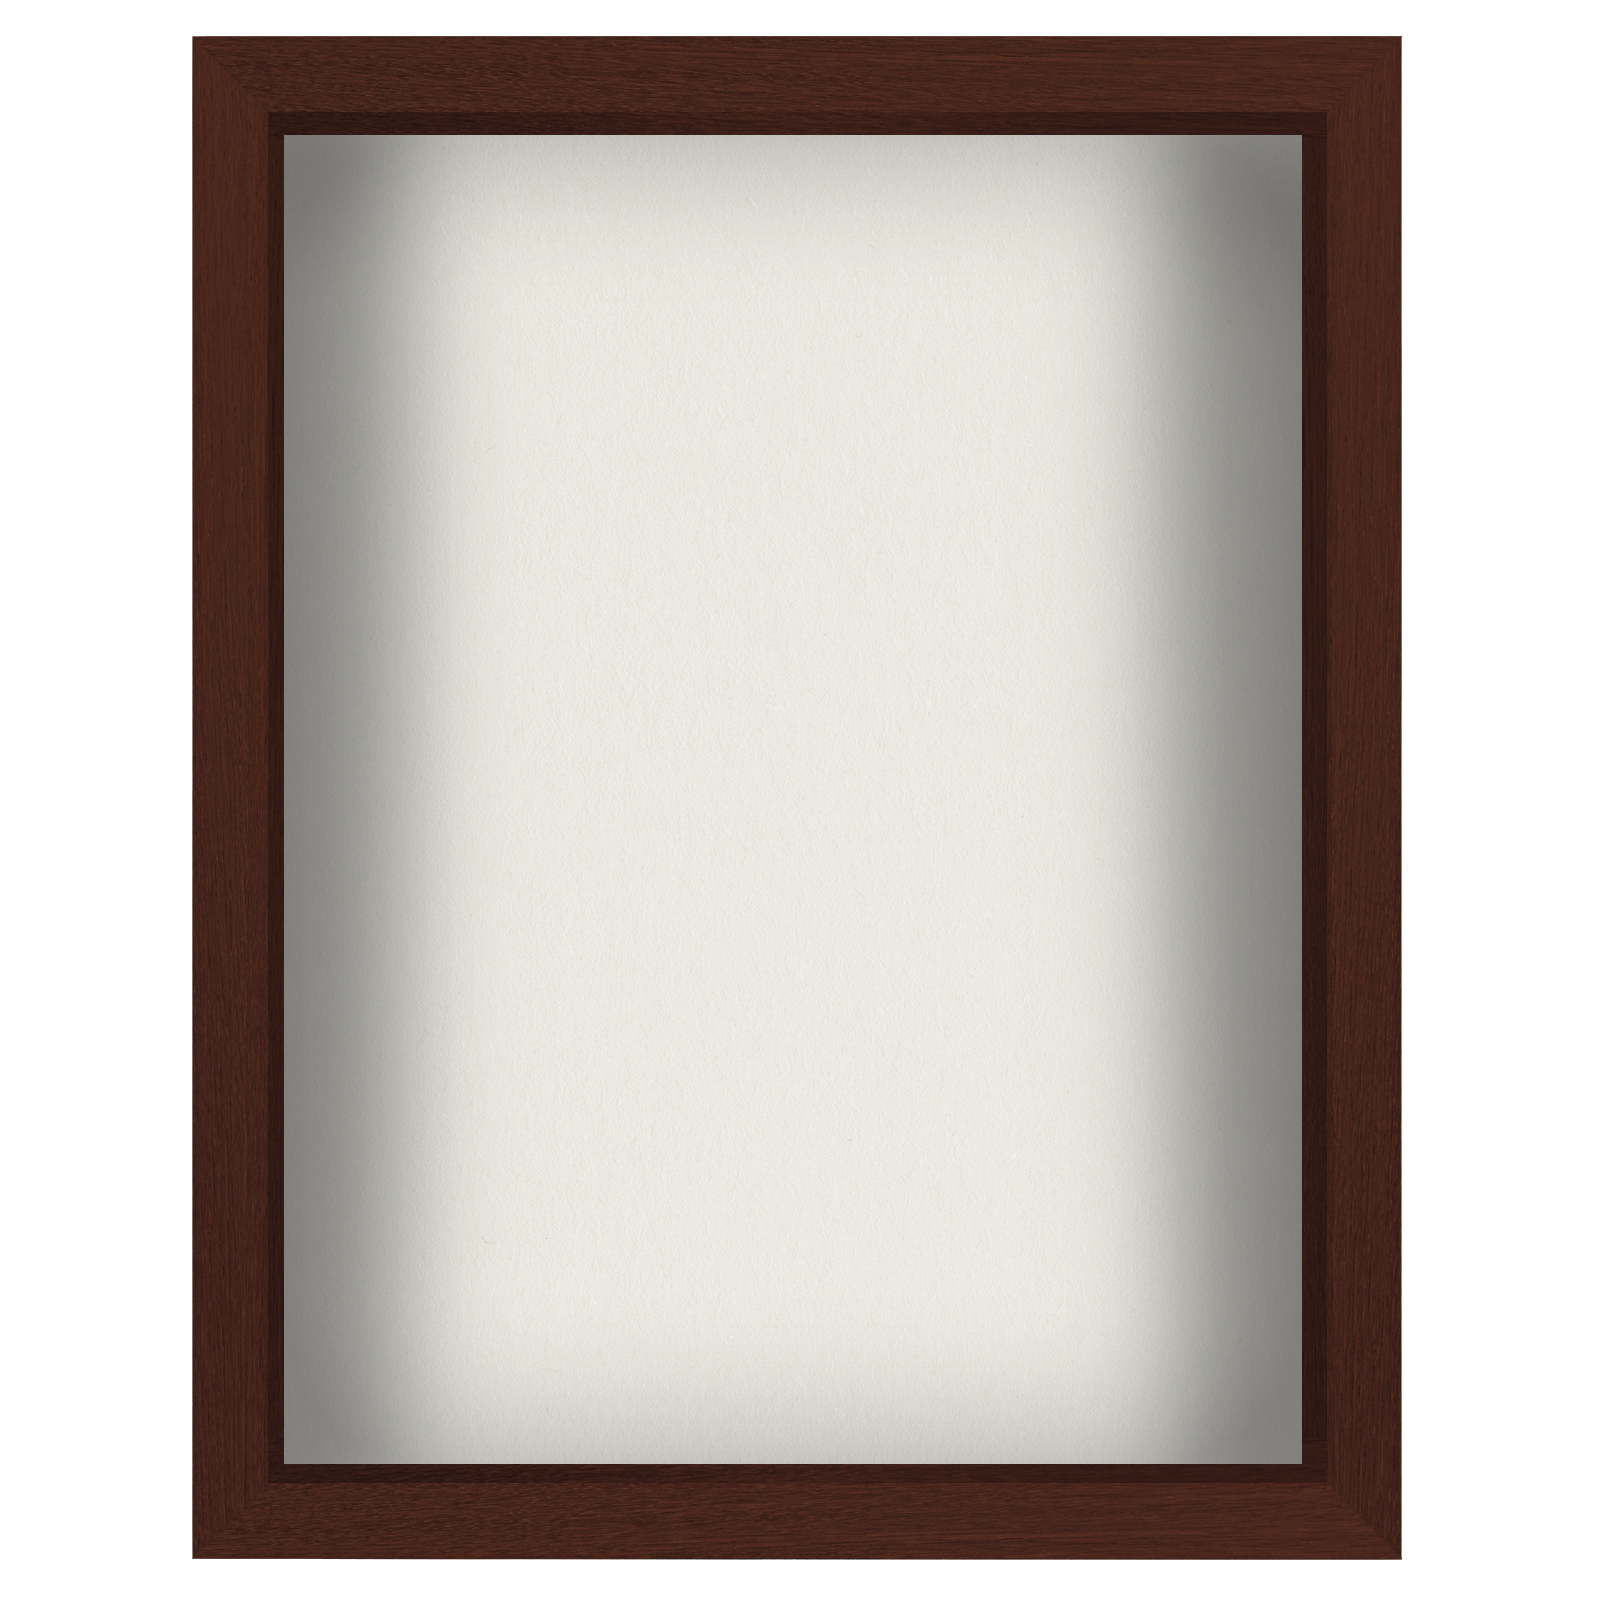 miniature 33 - Americanflat Shadow Box Frame with Soft Linen Back - Variety of Sizes